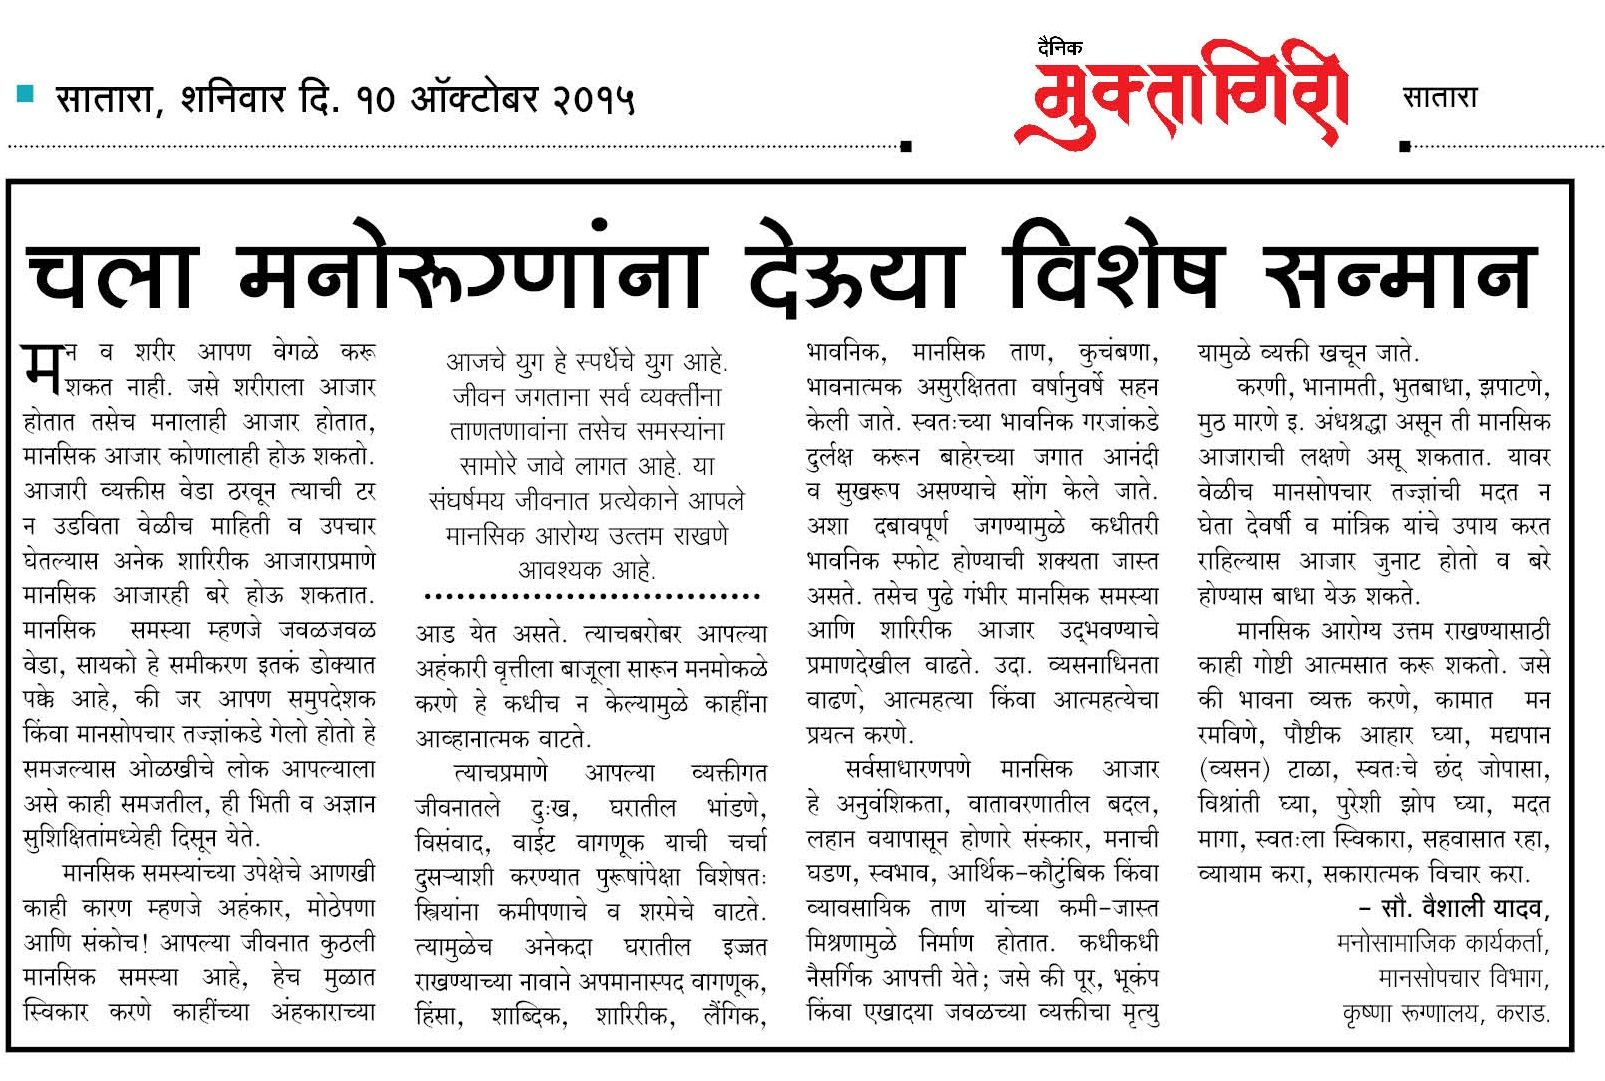 Newspaper Article - Muktagiri